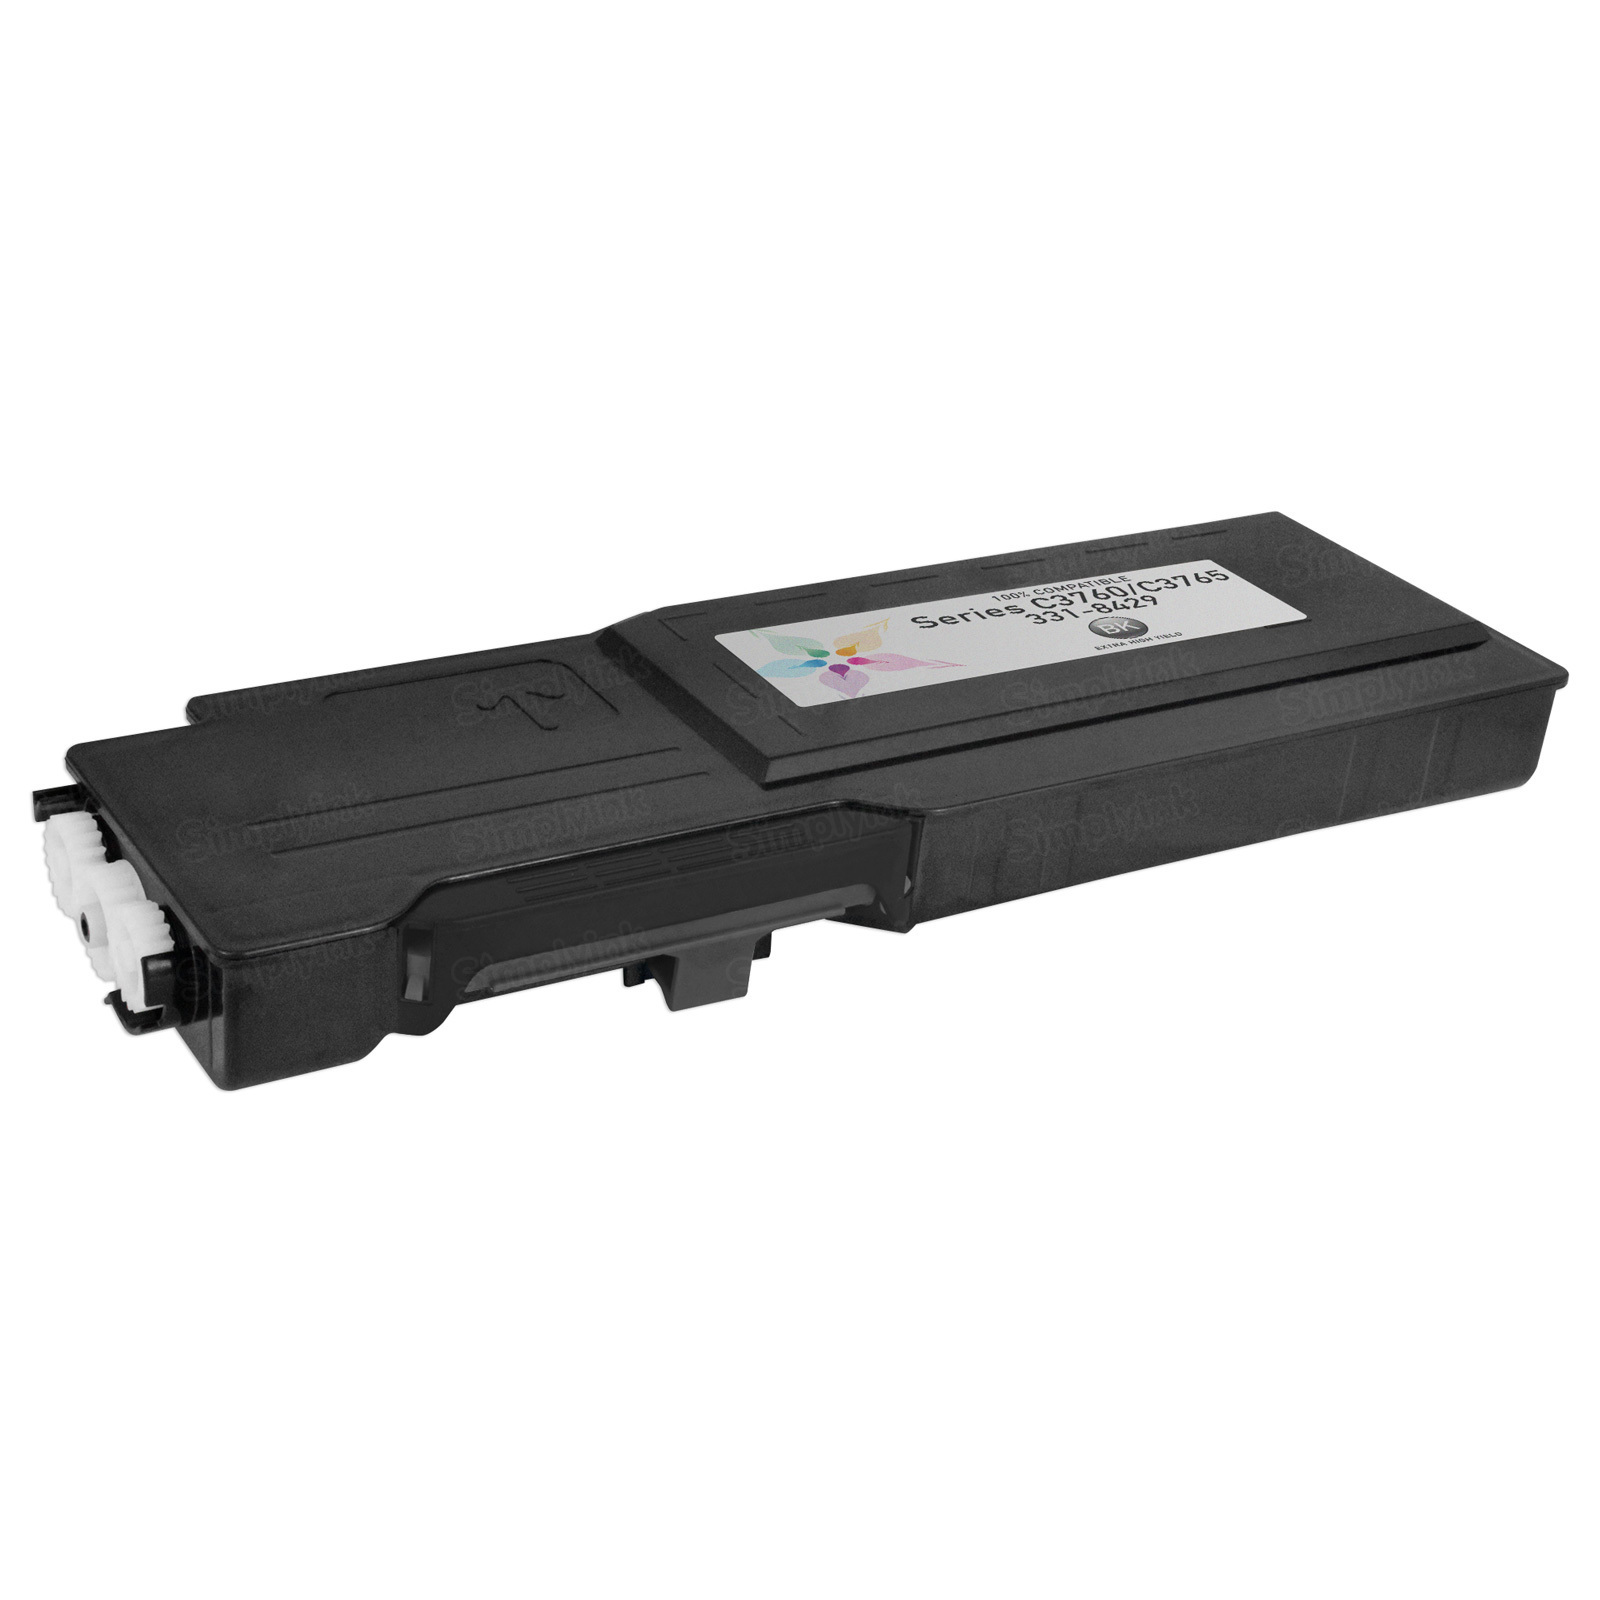 Compatible Alternative for 331-8429 Extra HY Black Laser Toner